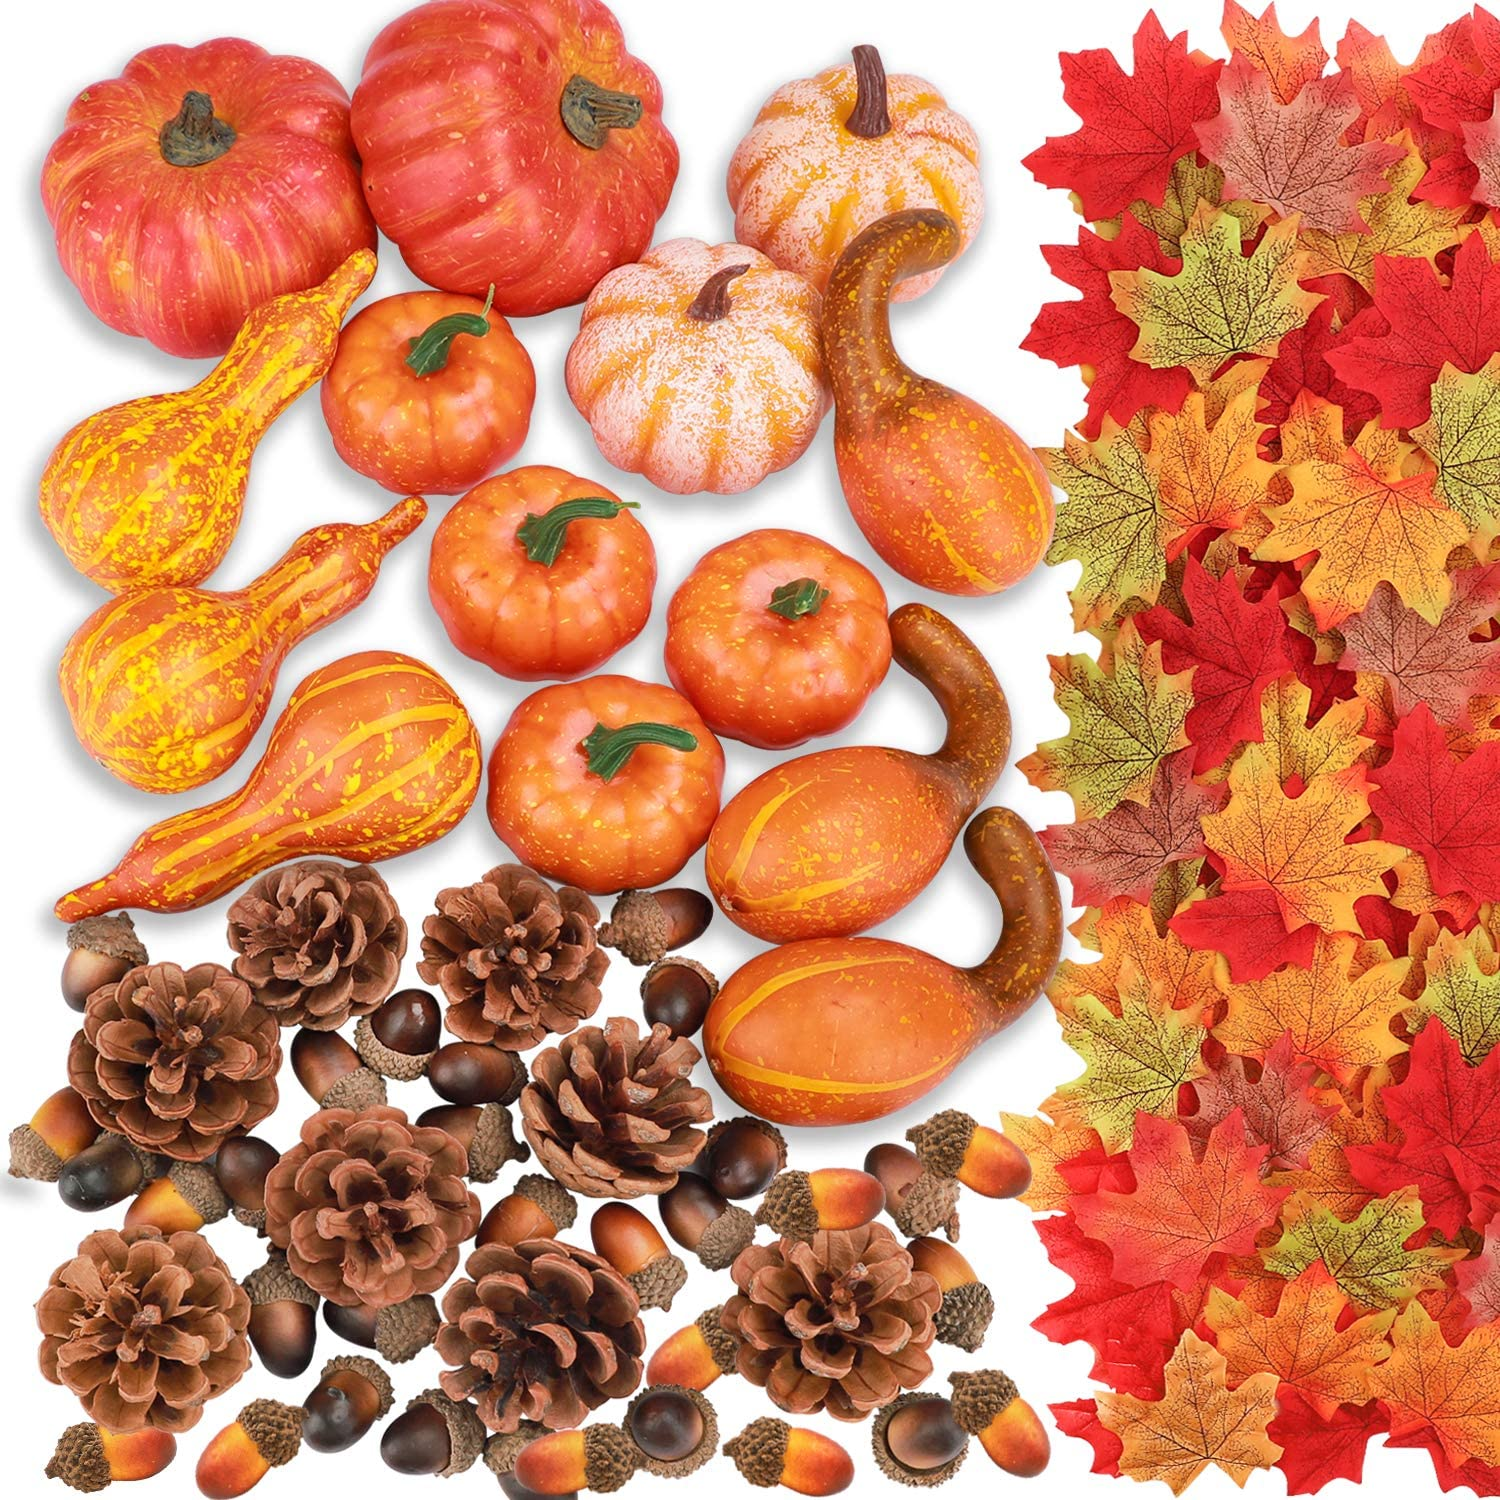 FUNARTY 142pcs Assorted Artificial Pumpkins Kits, Harvest Pumpkins and Gourd, Pine Cones, Acorns, Maple Leaves for Autumn Thanksgiving Halloween Festival Decor